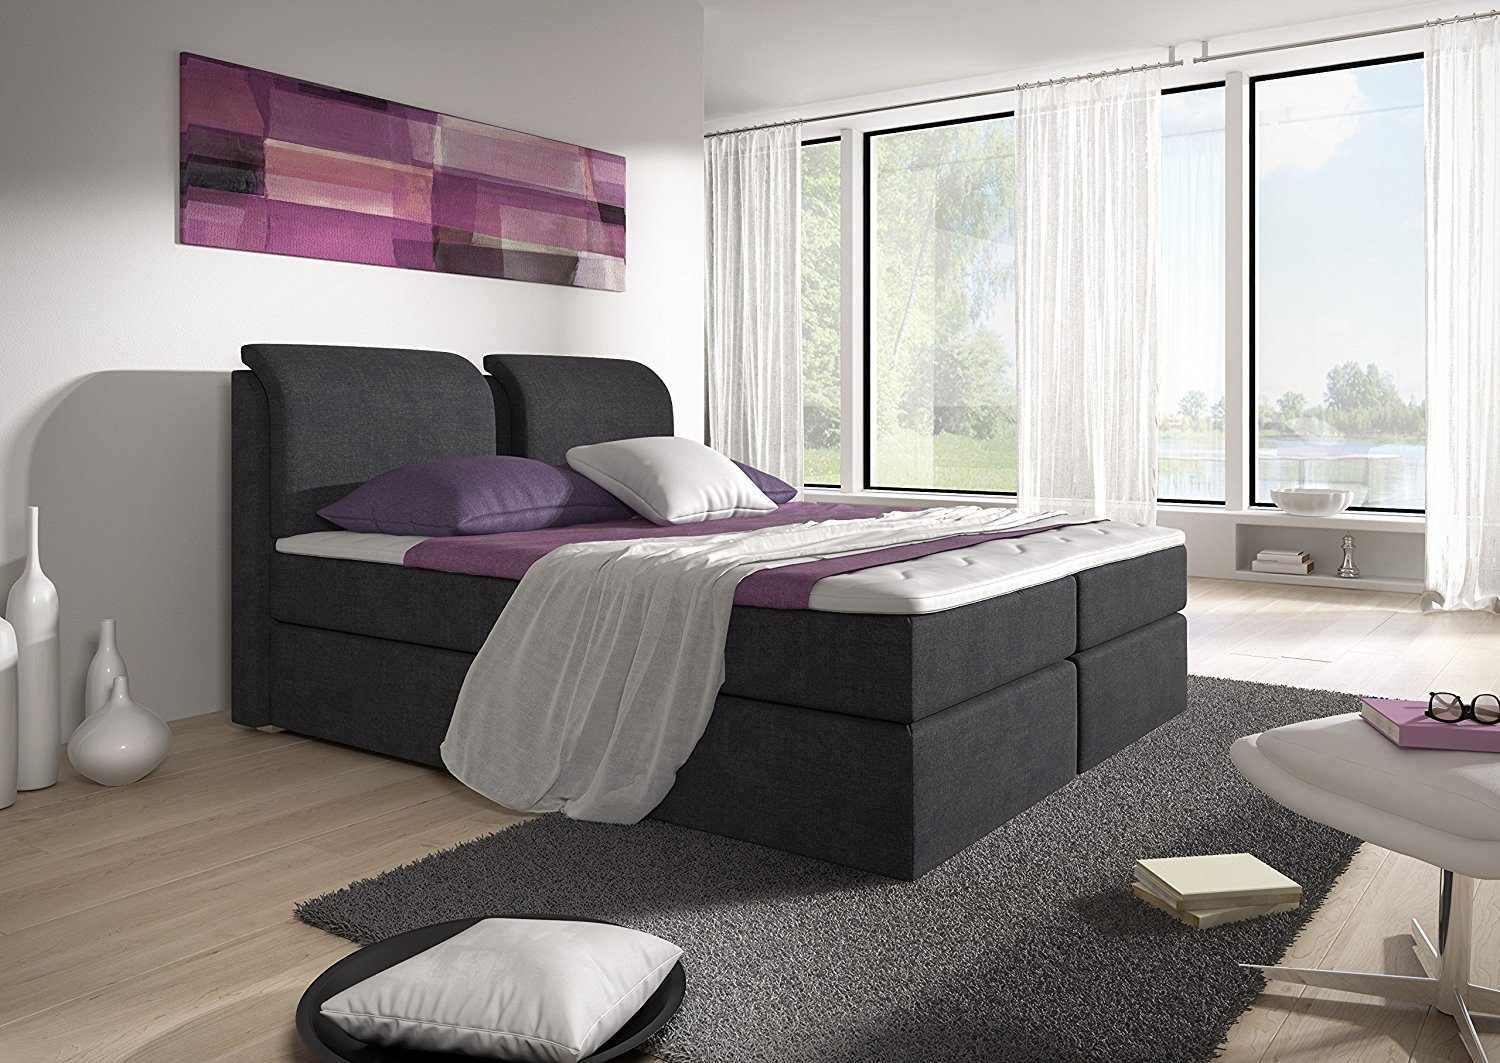 stilea boxspringbett. Black Bedroom Furniture Sets. Home Design Ideas